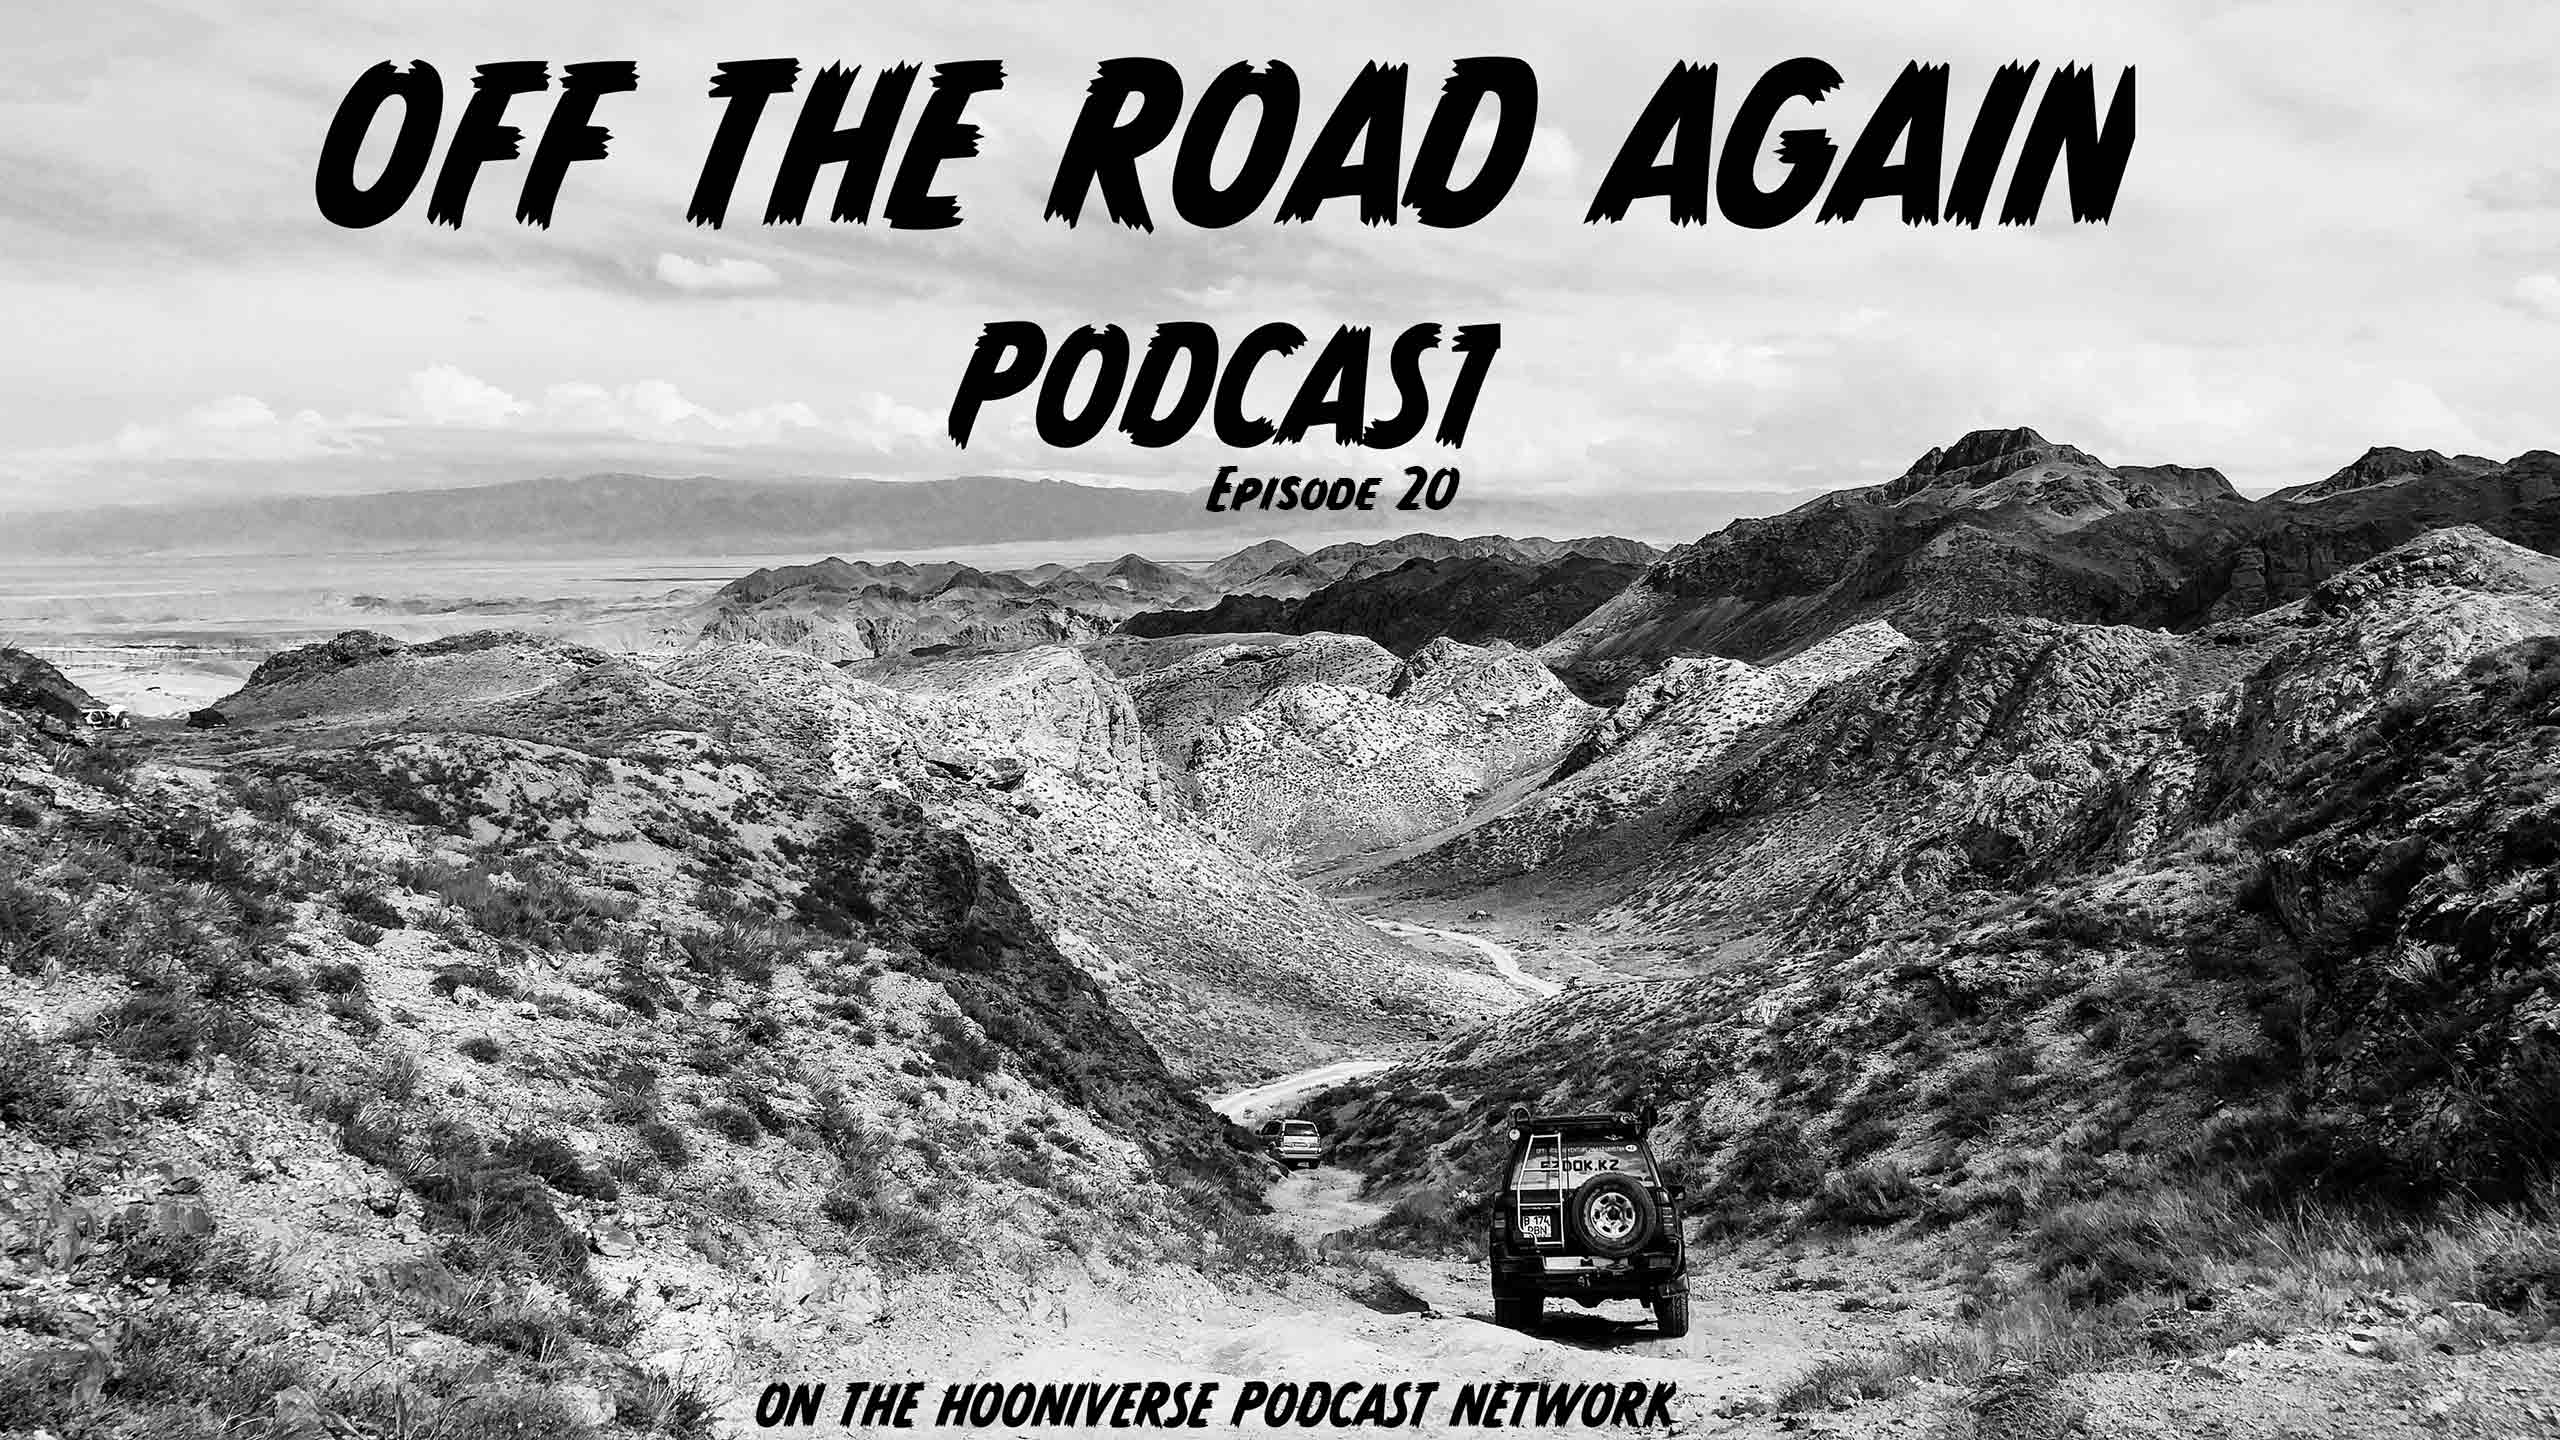 Off The Road Again - Episode 20